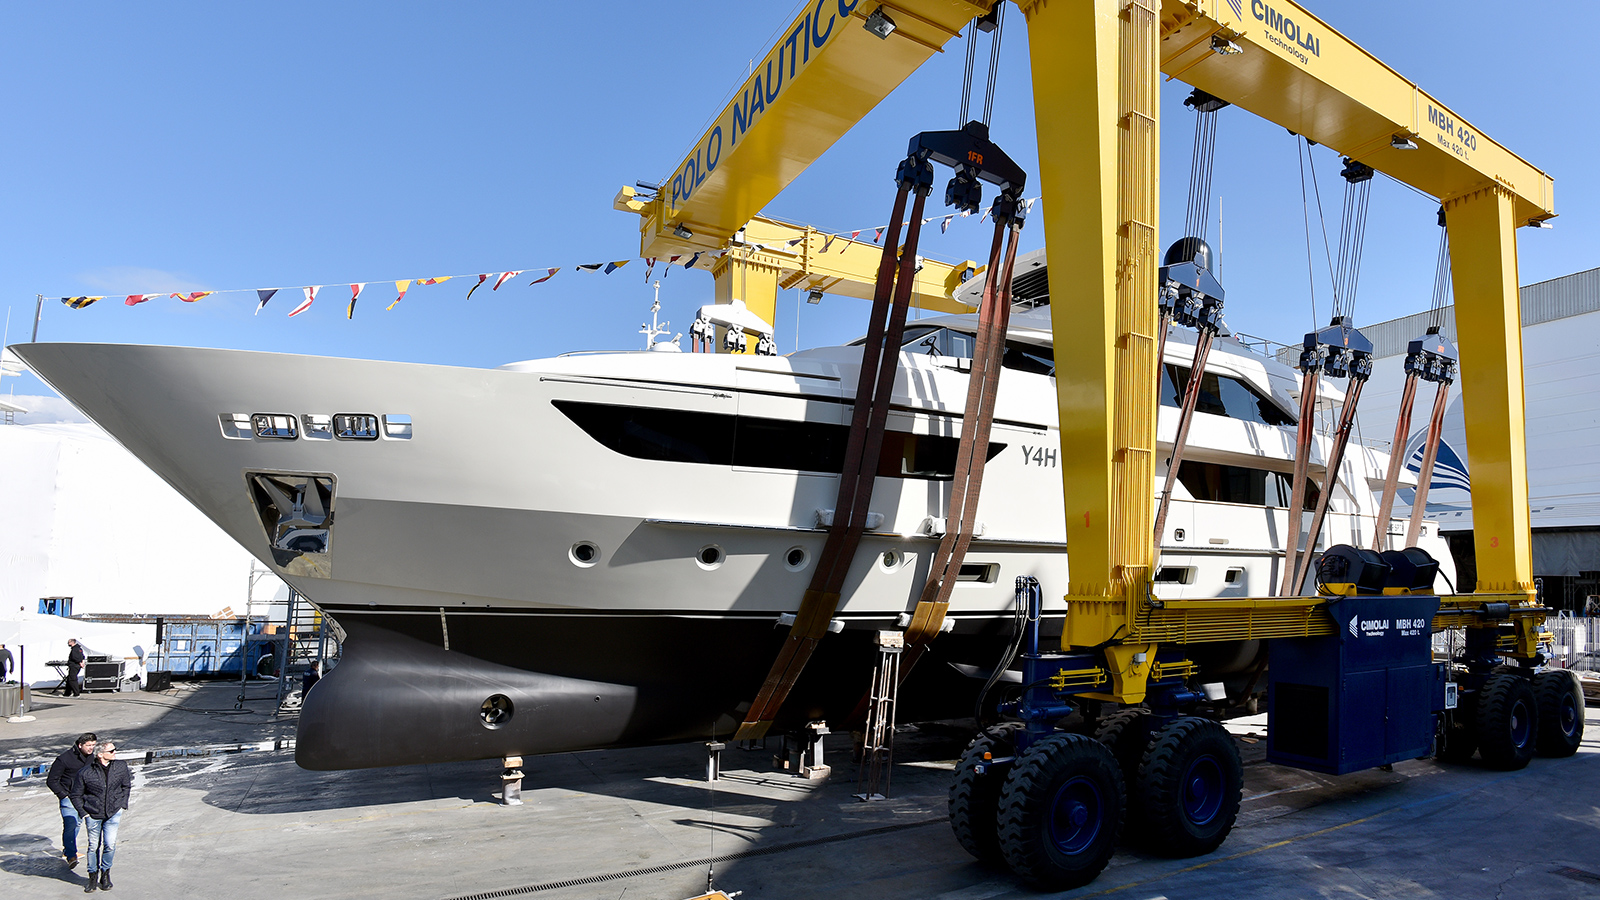 y4h-is-part-of-the-sanlorenzo-sd126-range-of-semi-displacement-yachts